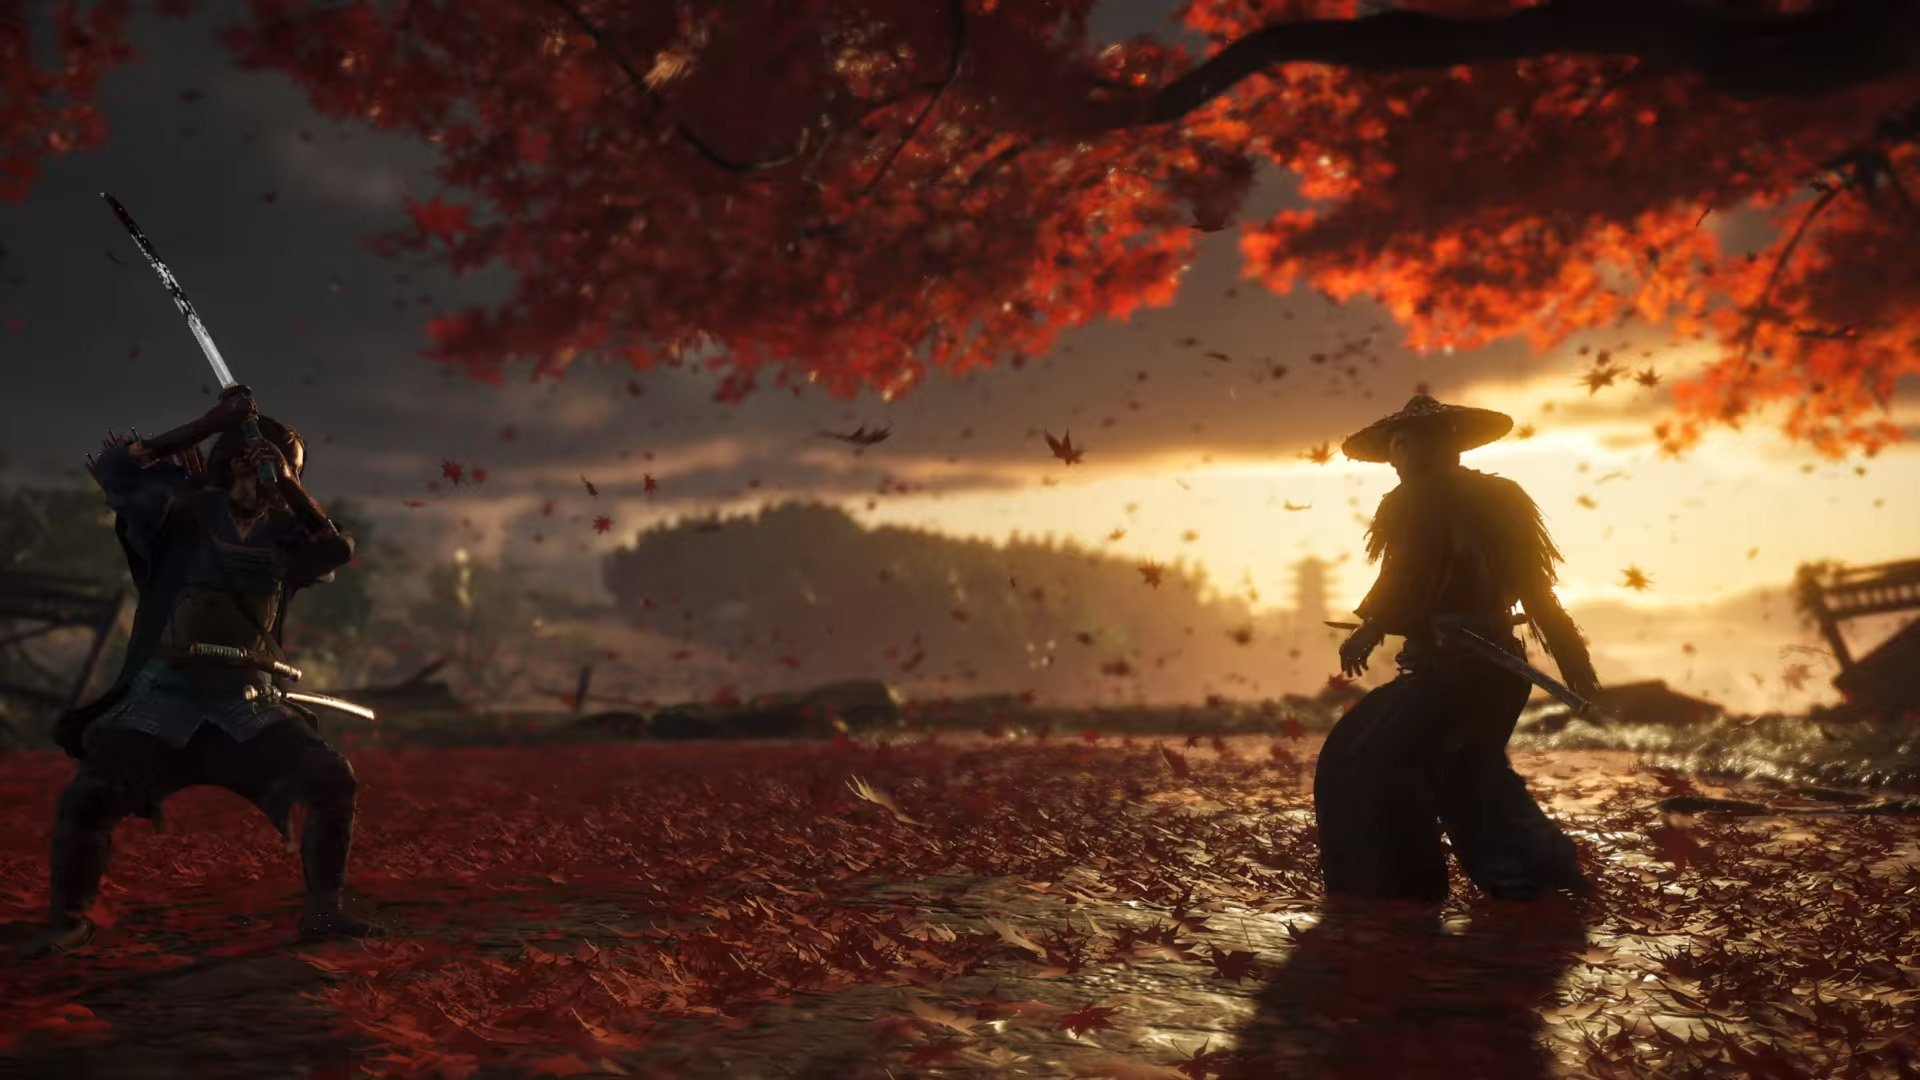 Ghost of Tsushima Is Still a PS4 Game, Sony Reiterates